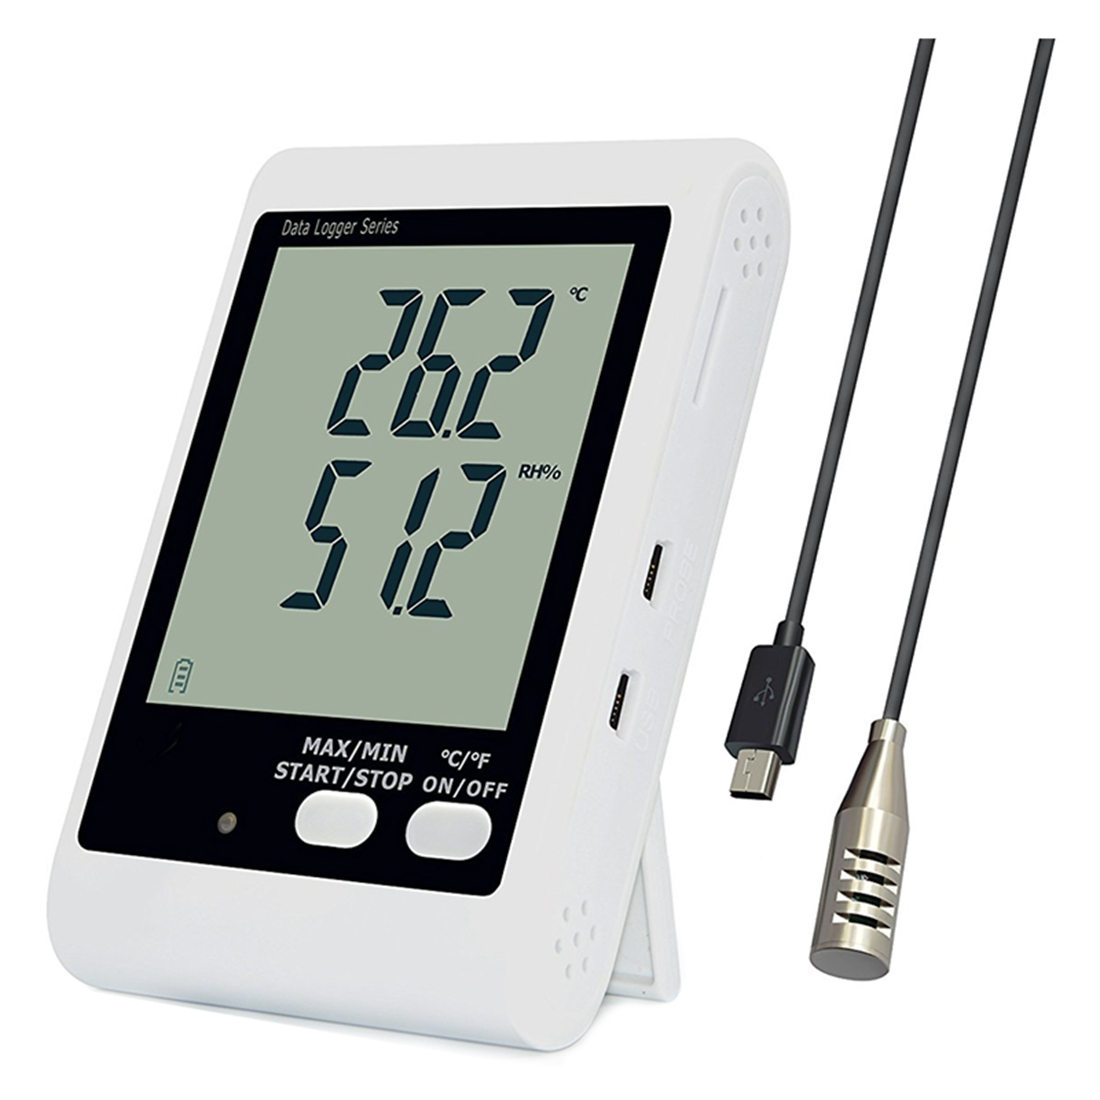 New Style YOWEXA Temperature and humidity loggers with Backlit LCD Display and Sound-light Alarm, 3m External Probe Included free shipping and low temperature alarm 634f 220v electron temperature alarm sound and light alarm thermostats